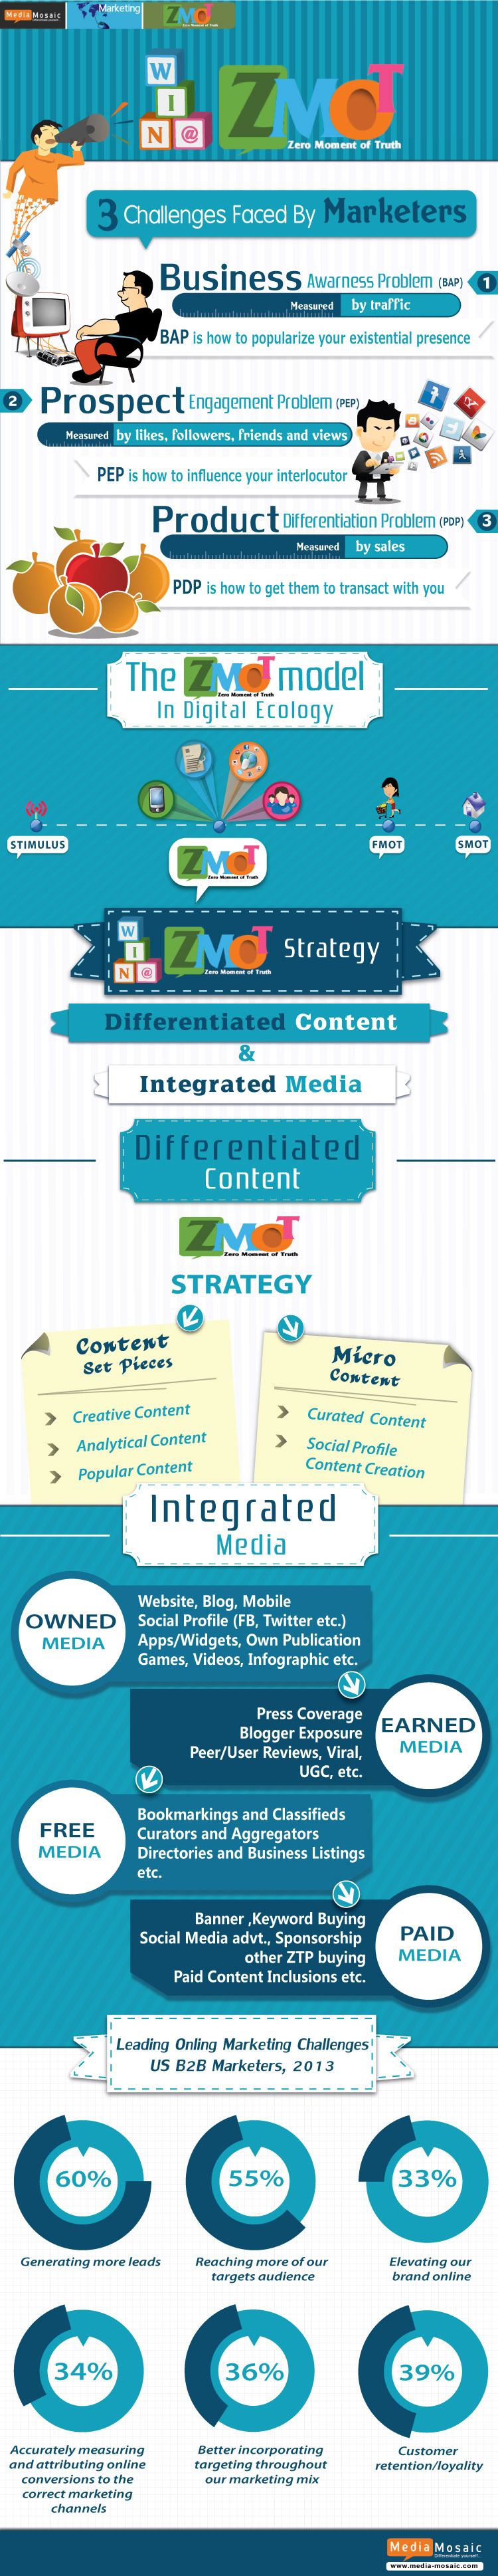 ZMOT Marketing Strategy-Infographic